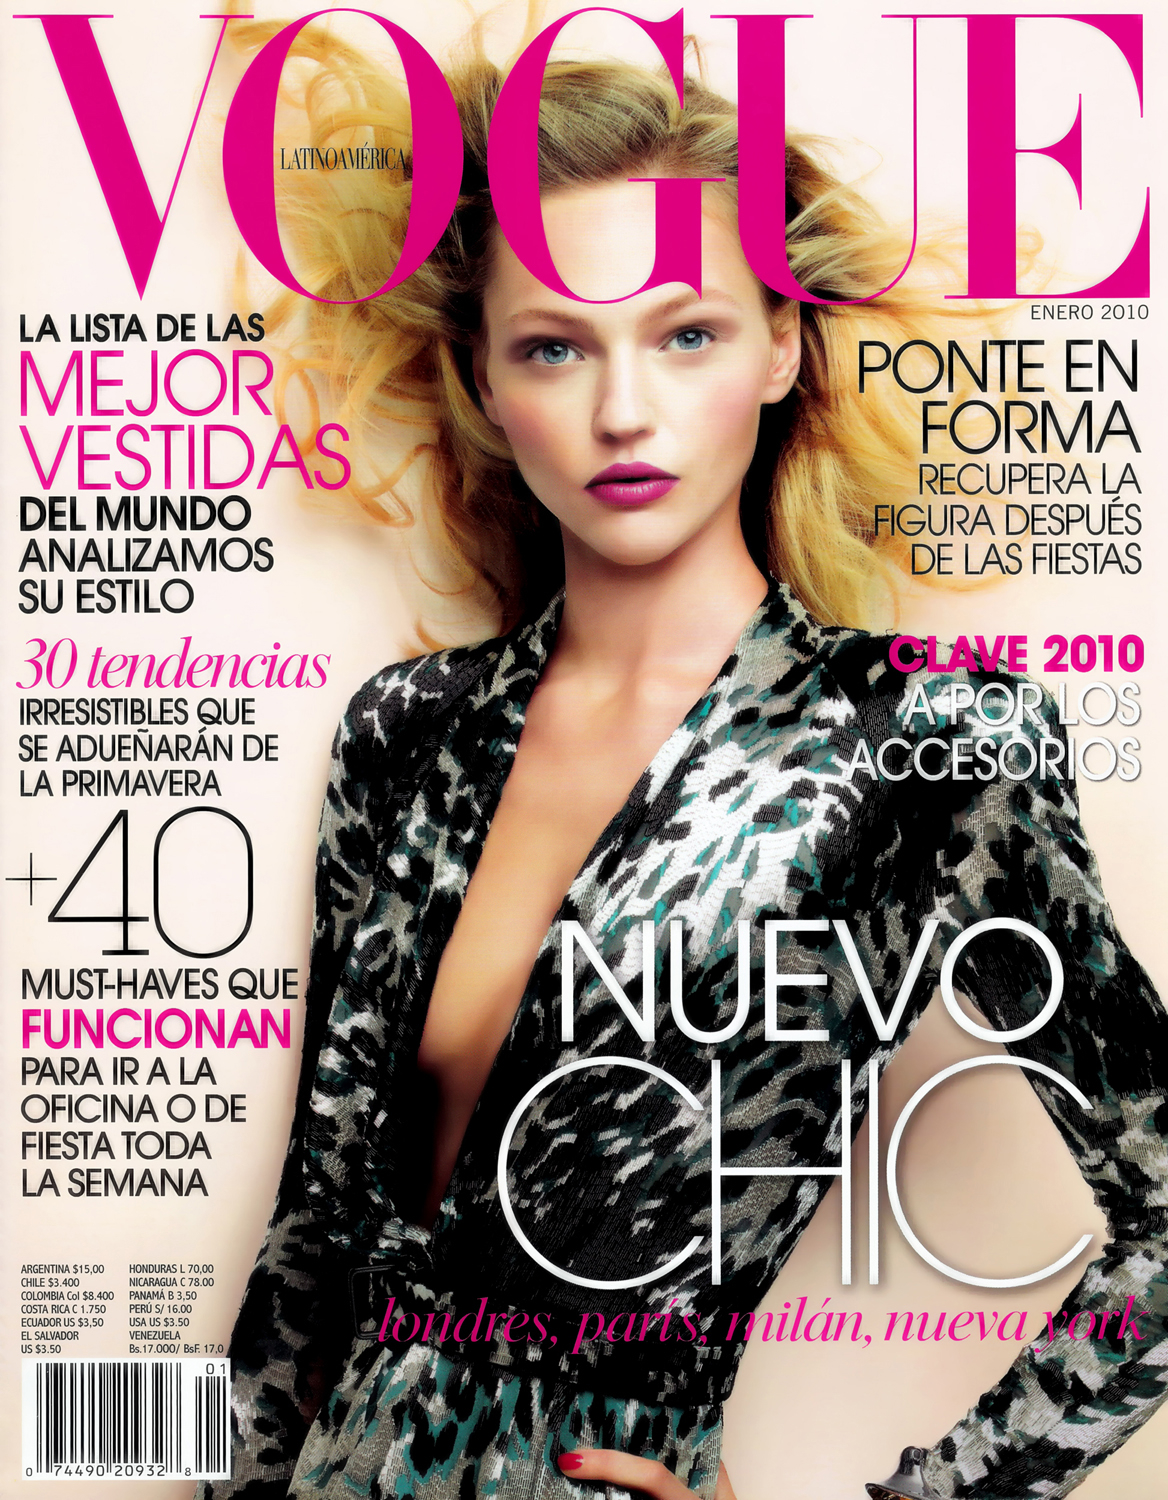 Vogue's Covers: Sasha Pivovarova